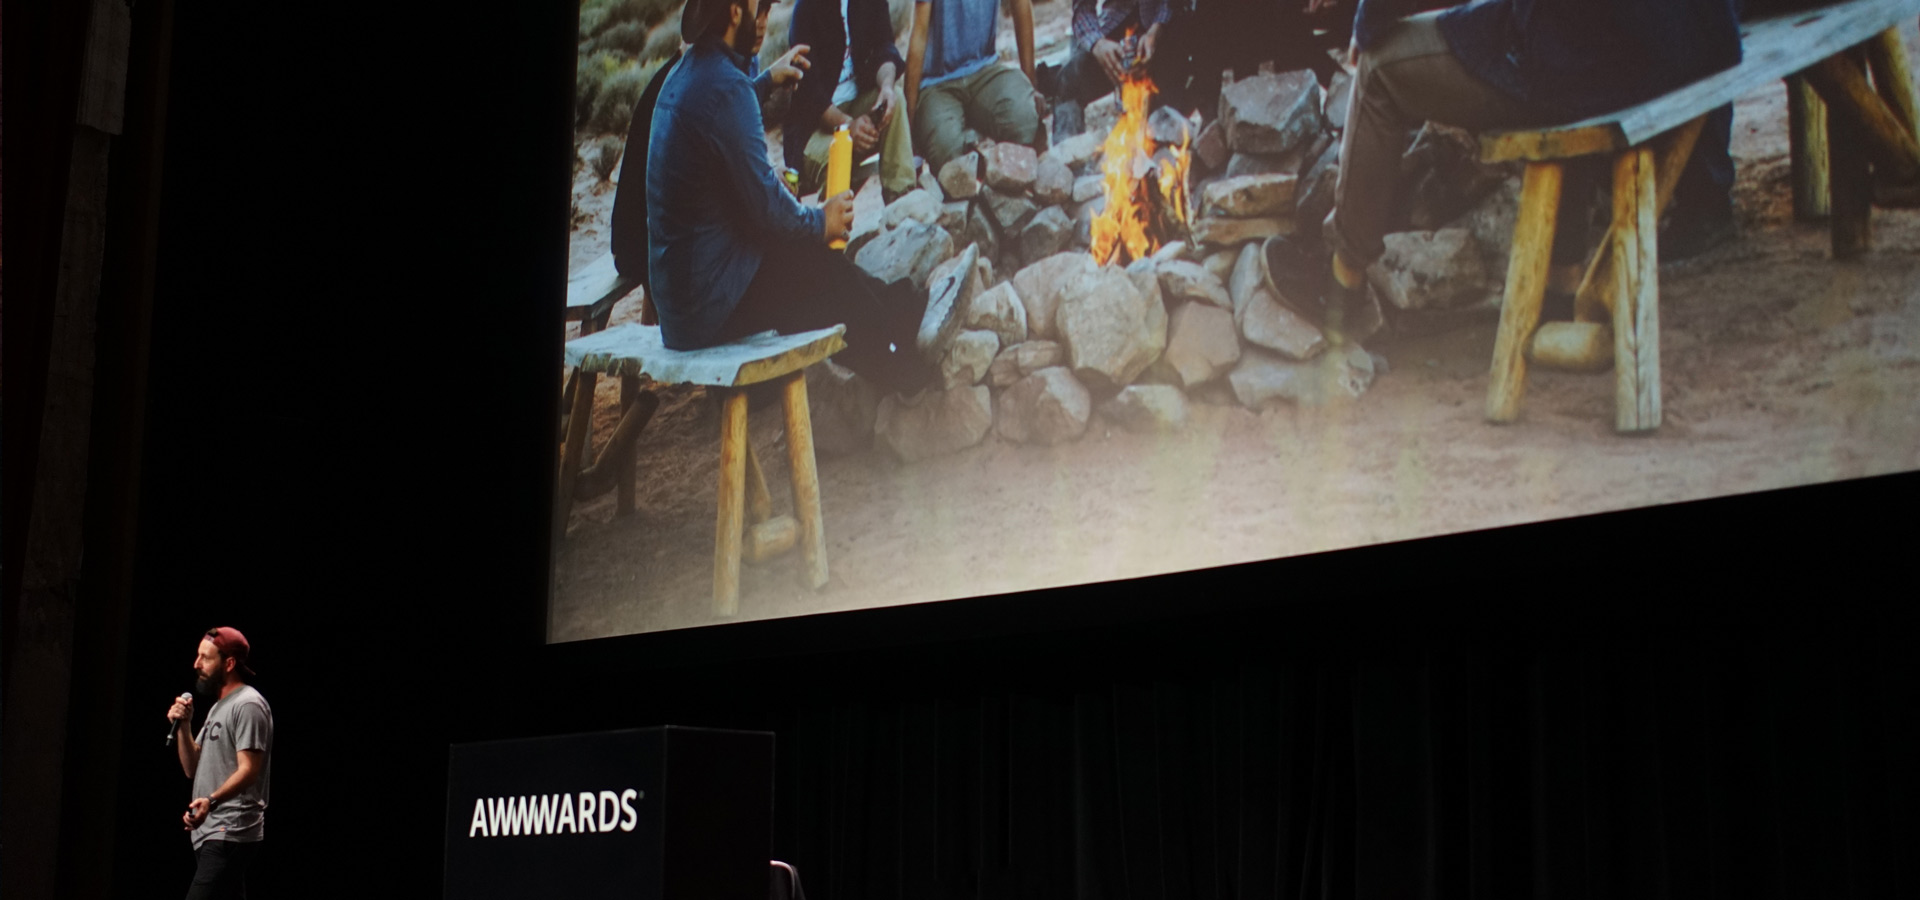 How I Went From Attendee to Closing the Conference - Dann Petty's Awwwards LA Story!